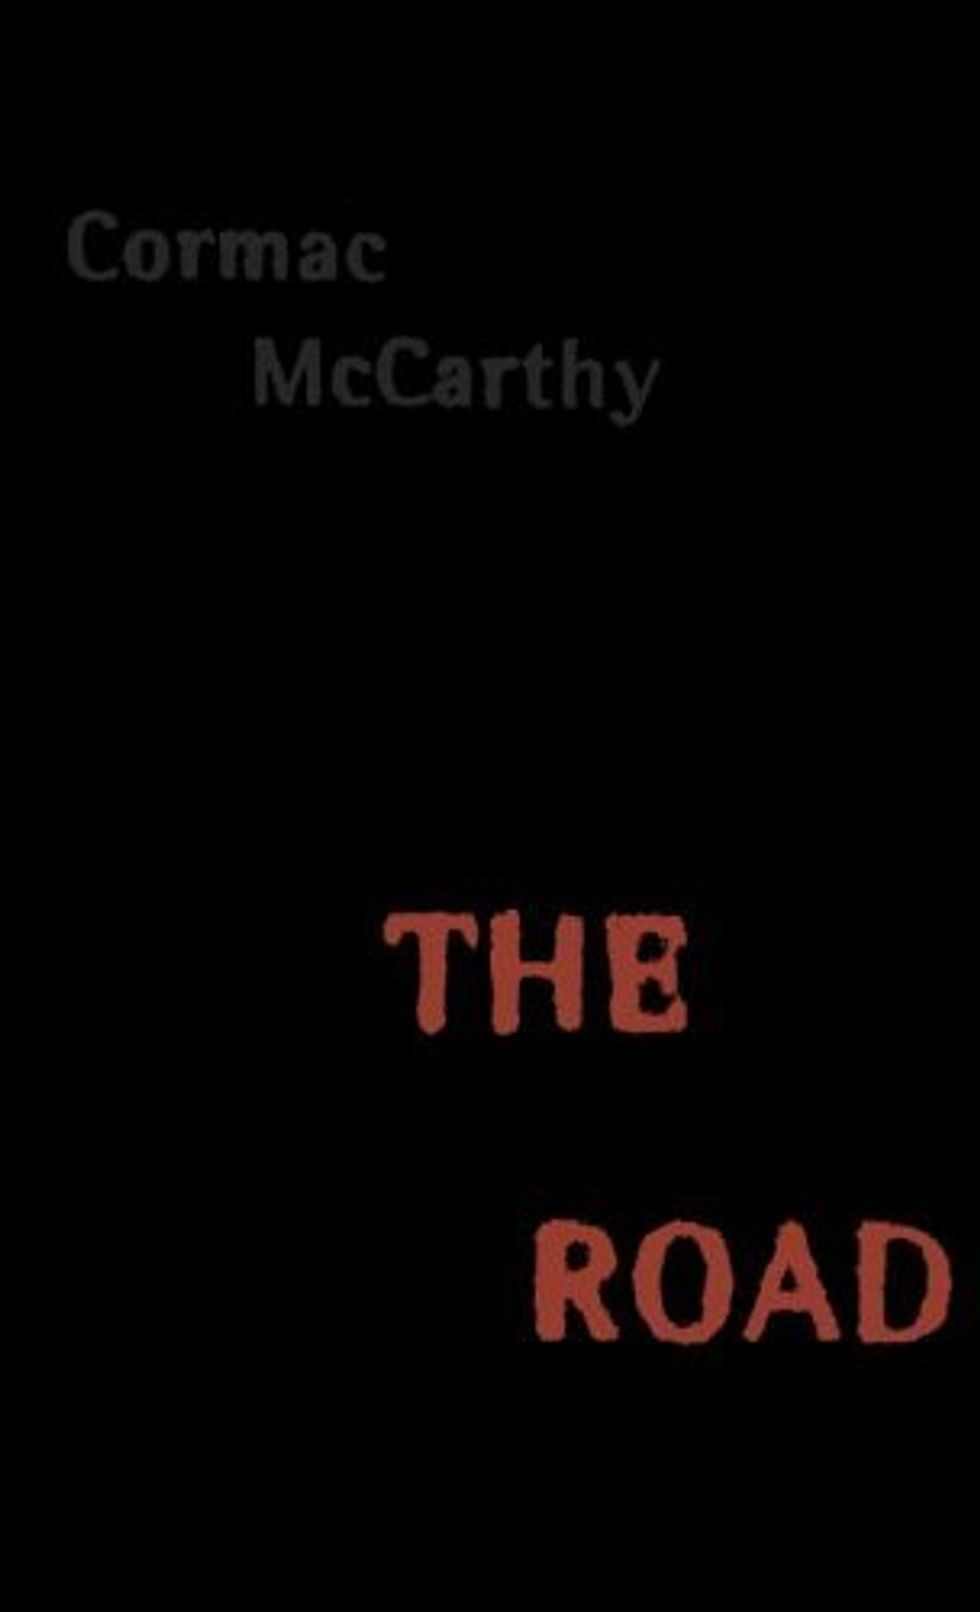 Cormac McCarthy, Man of the Hour